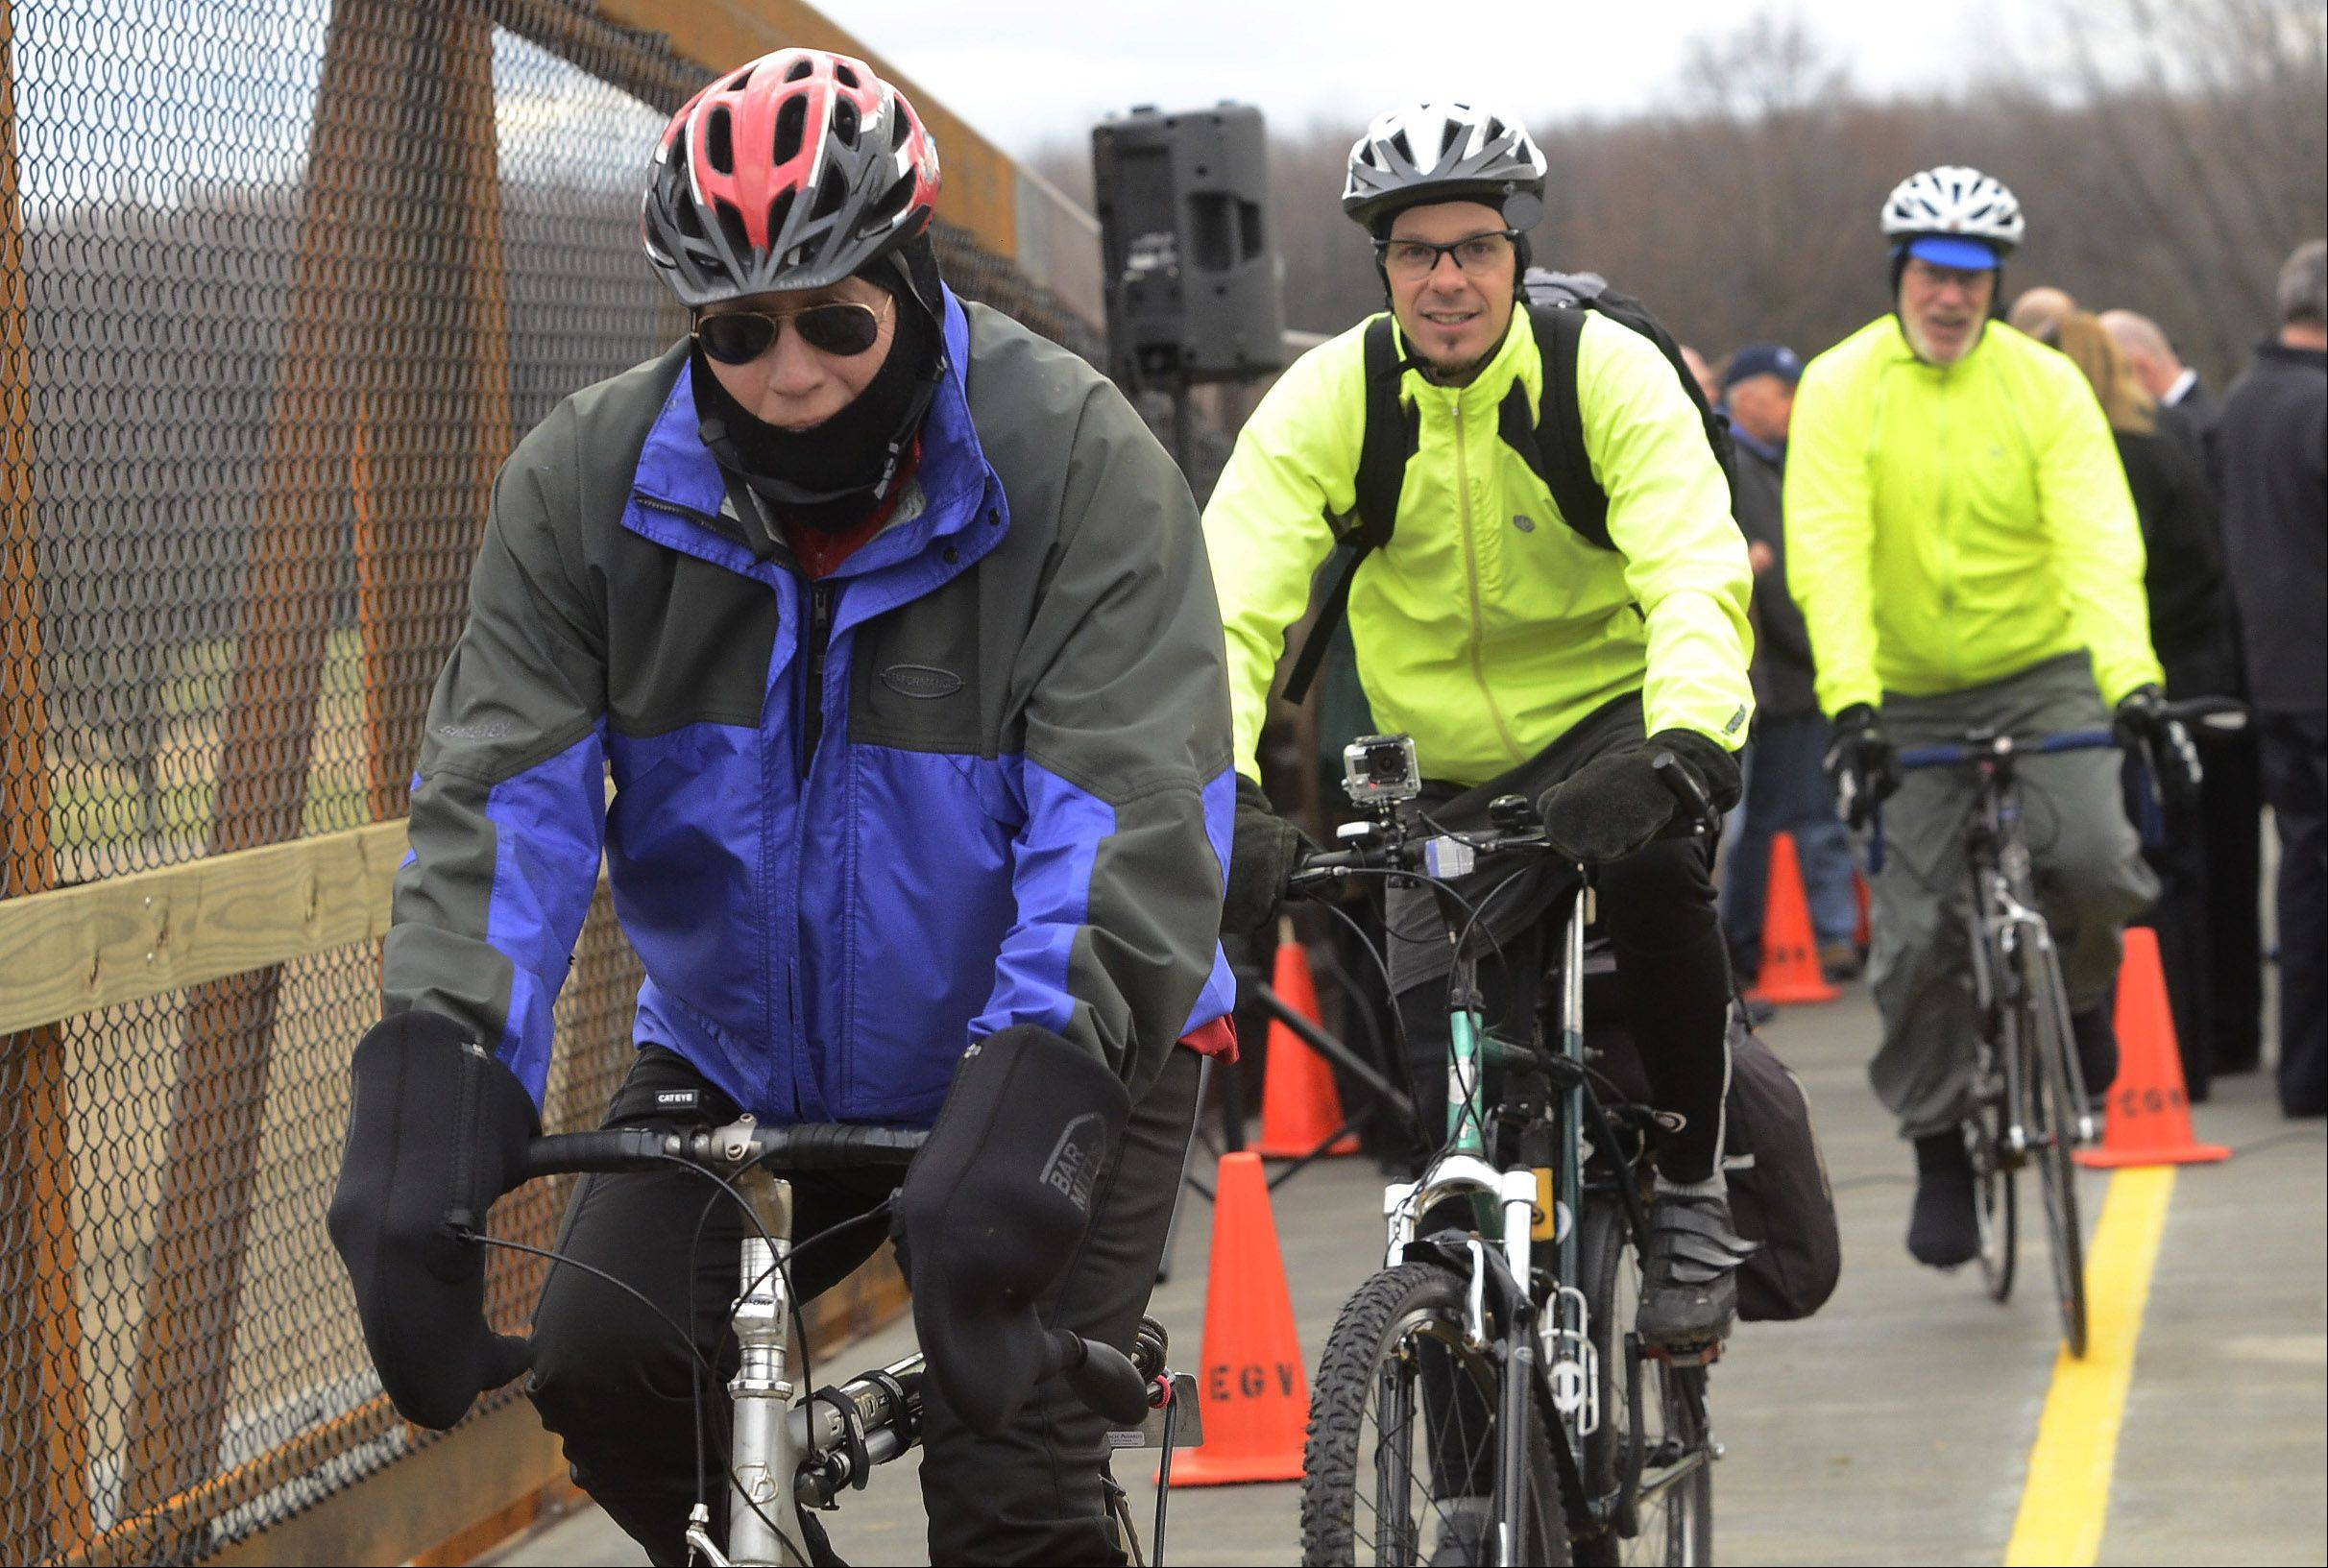 Bicyclists make their way across a new $2.7 million overpass after it was formally dedicated on Friday.